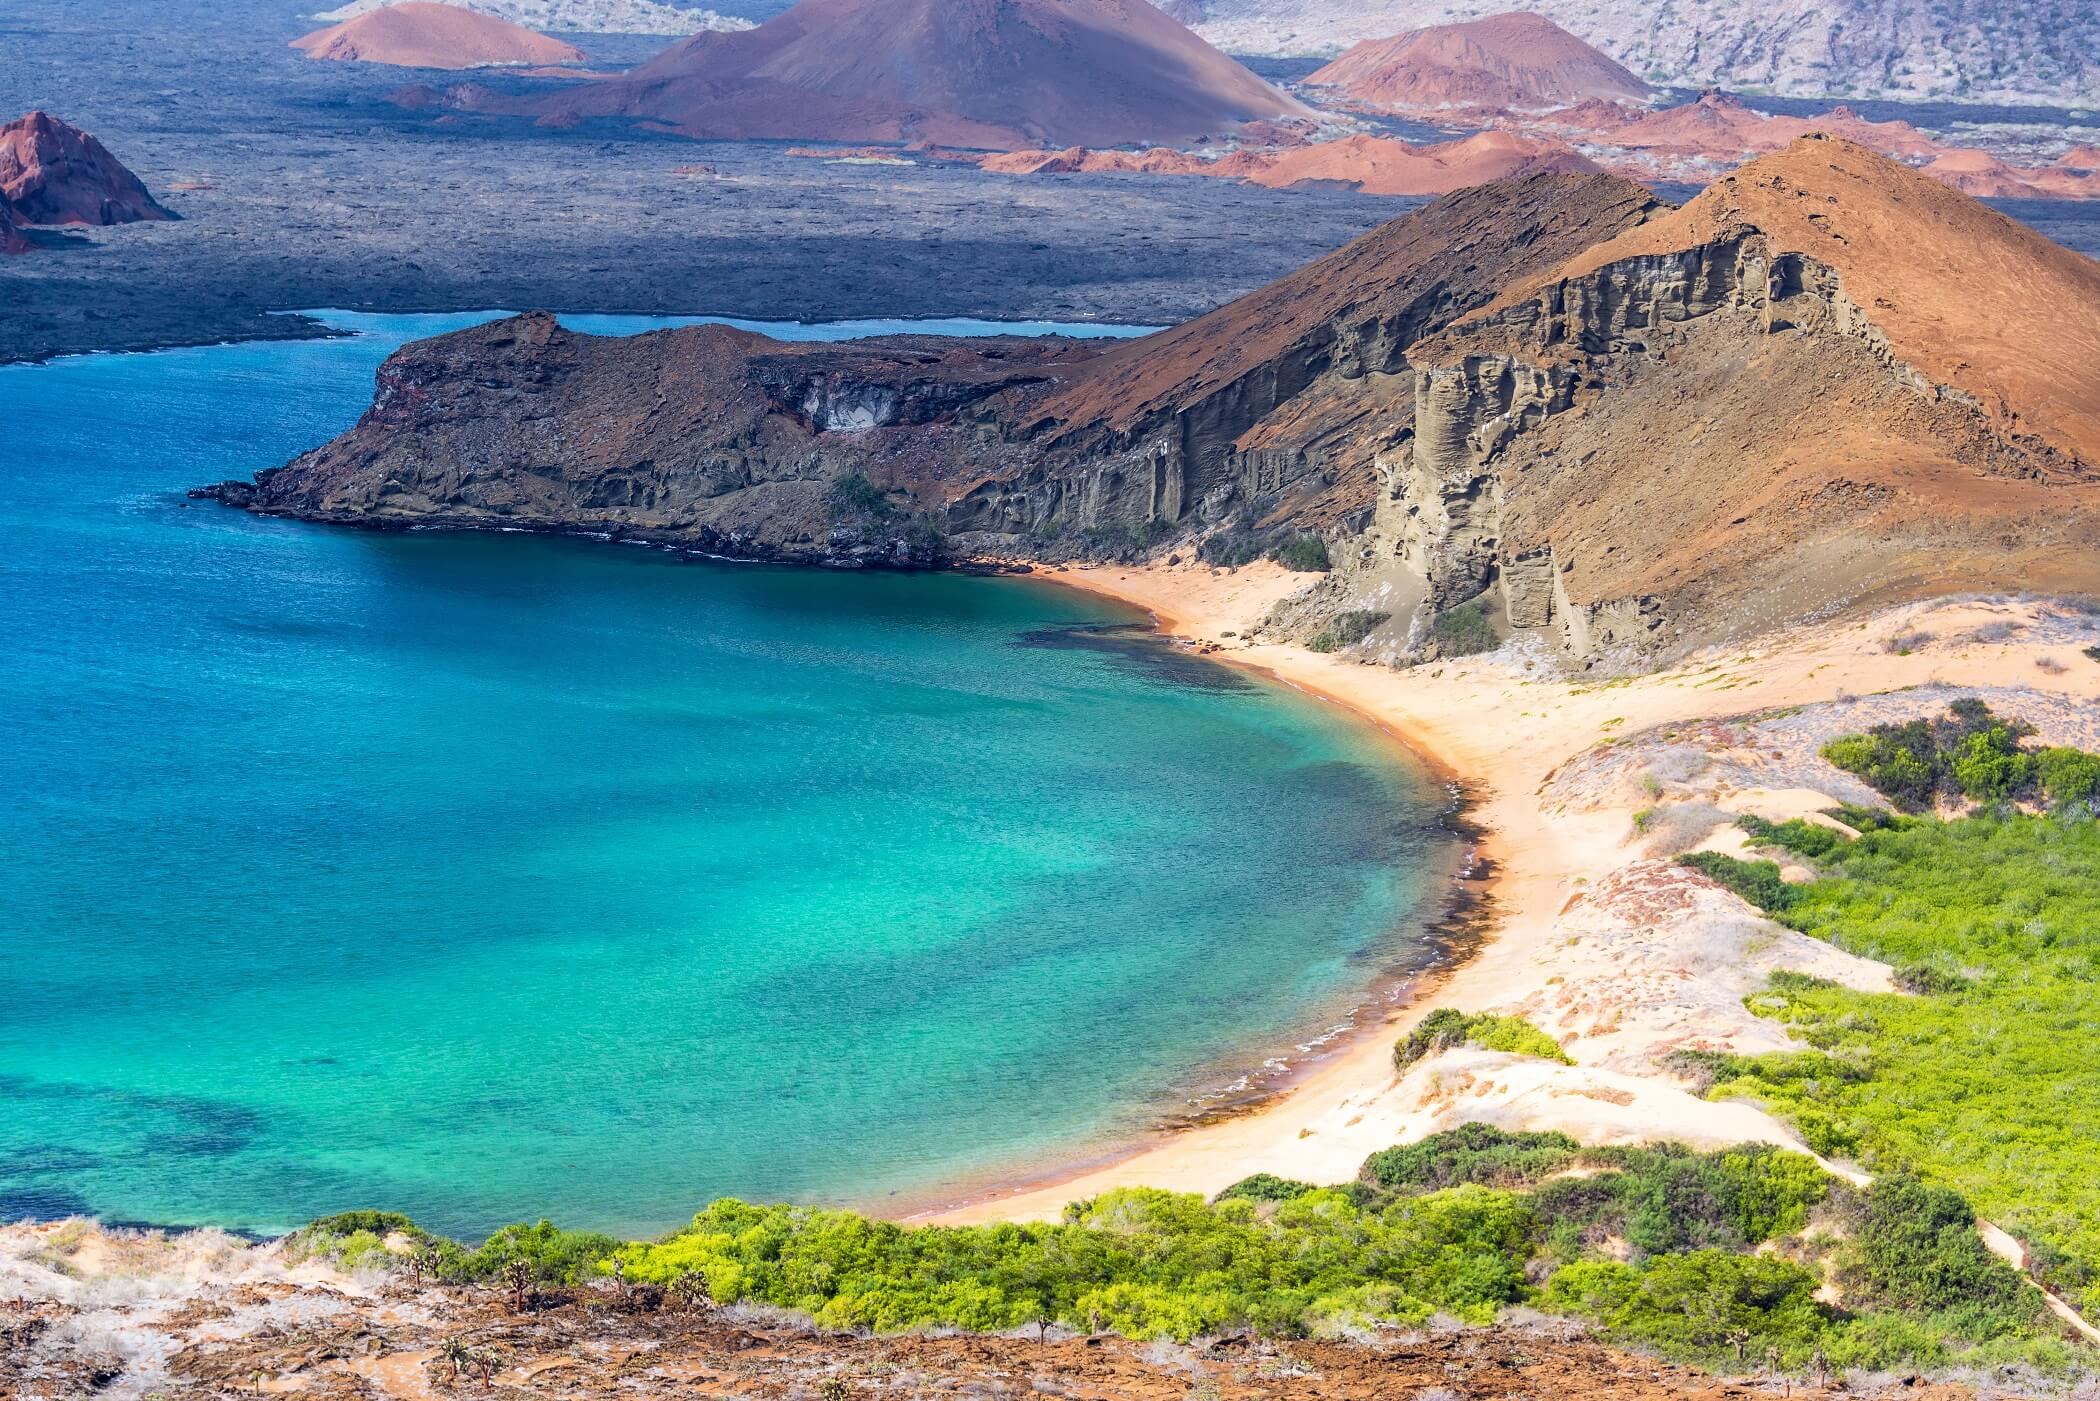 Discover the Galapagos Islands